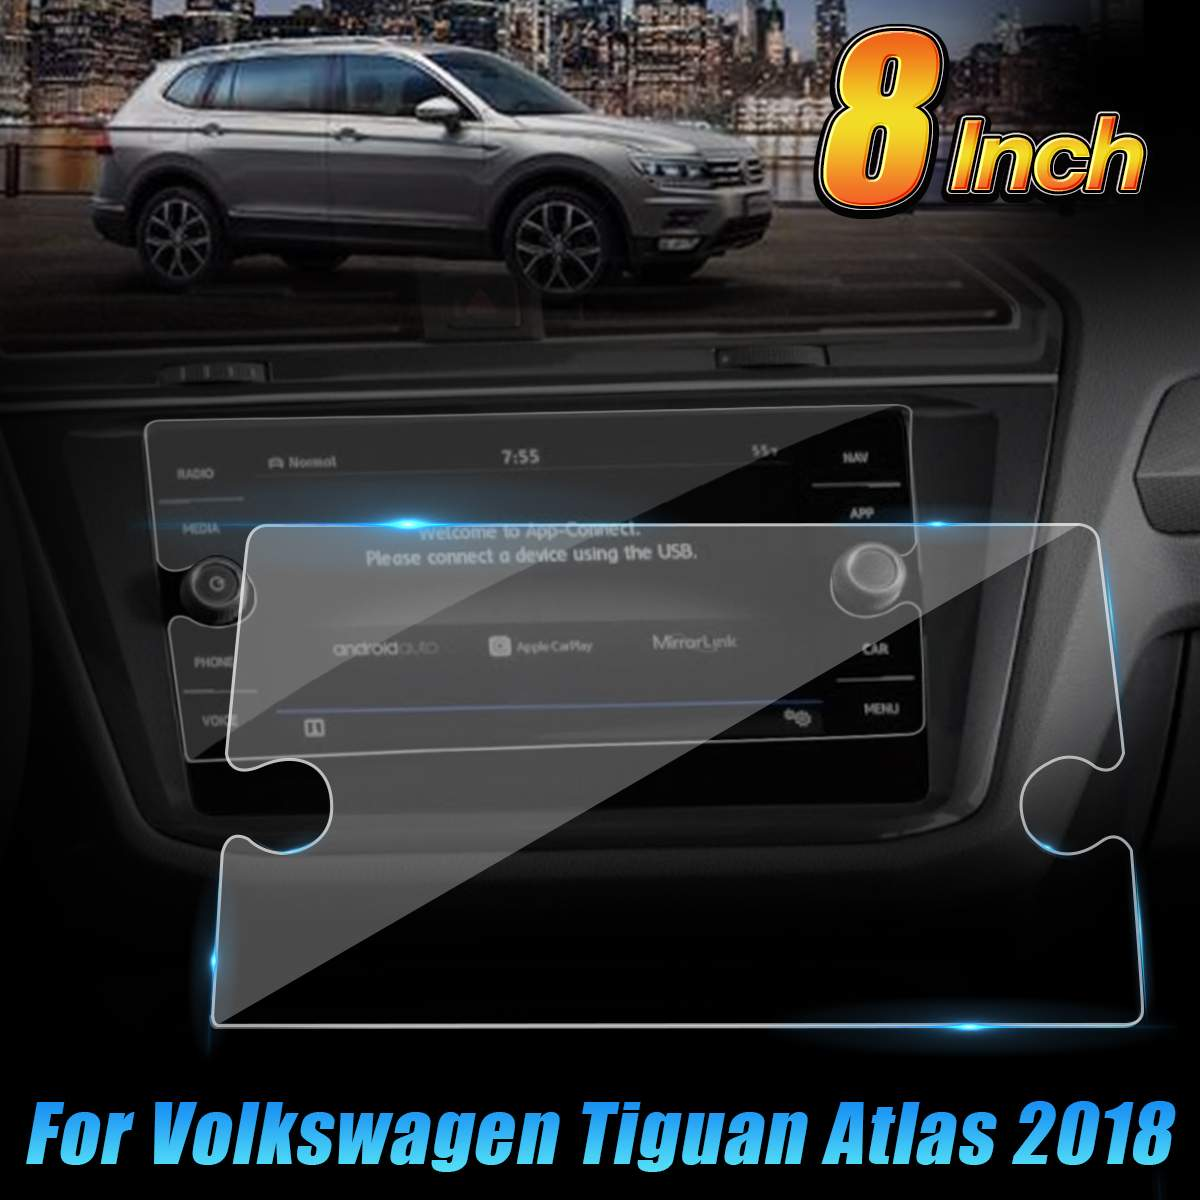 8 Inch Car GPS Screen Film Protector Navigation LCD Tempered Film For VW Tiguan Atlas For Volkswagen Tiguan (2018)8 Inch Car GPS Screen Film Protector Navigation LCD Tempered Film For VW Tiguan Atlas For Volkswagen Tiguan (2018)